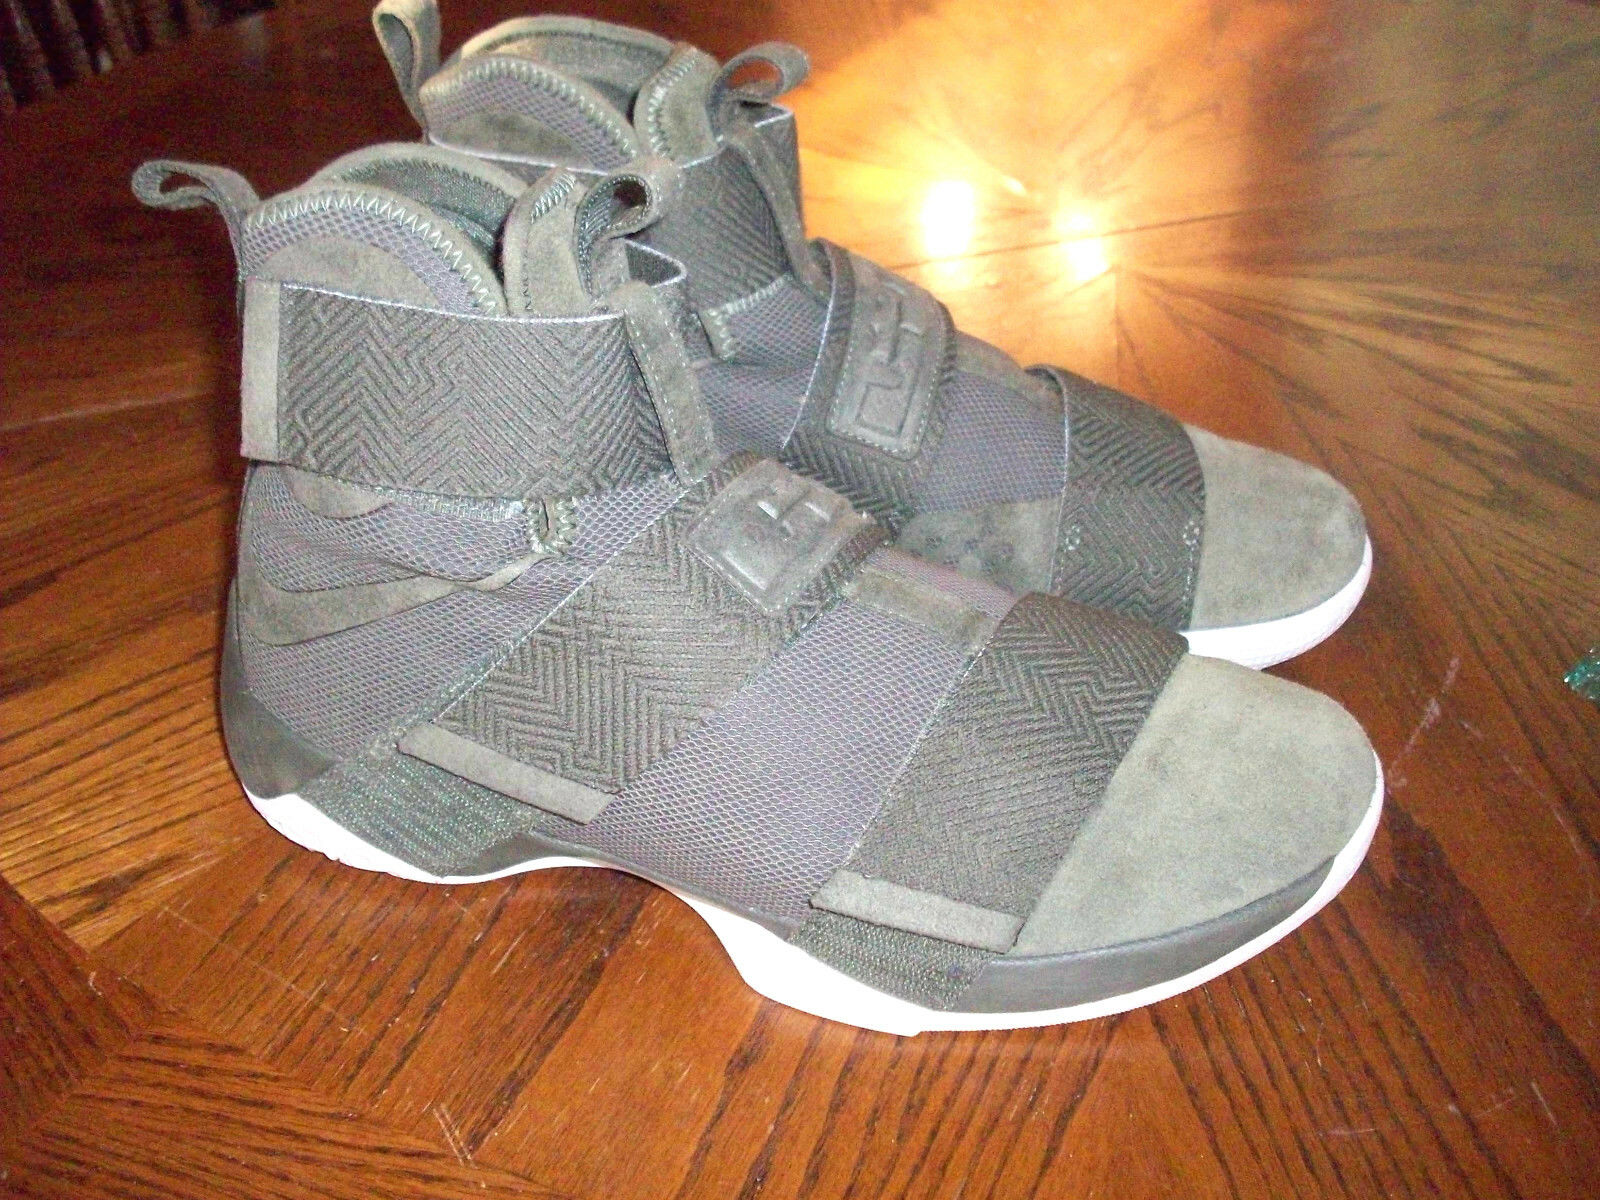 0524061c053 NIKE LEBRON LEBRON LEBRON JAMES SHOES SOLDIER MENS SIZE 10 SUEDE CARGO  KHAKI GREEN 911306-